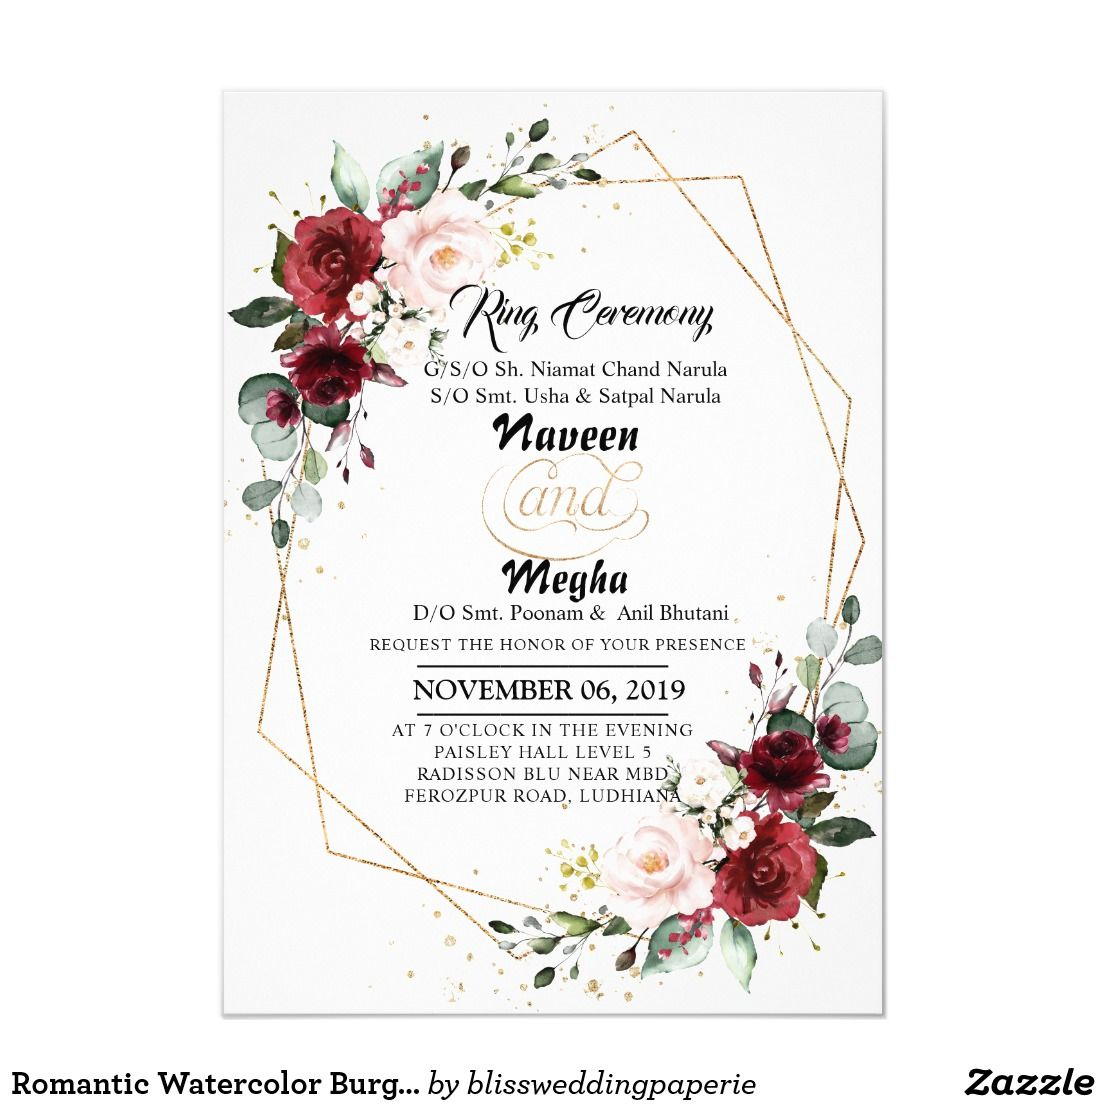 A Little Floral Little Colorful Follow The Trend Of Whatsappweddinginvite Make Your Bi In 2020 Indian Wedding Invitations Invitations Wedding Invitation Cards